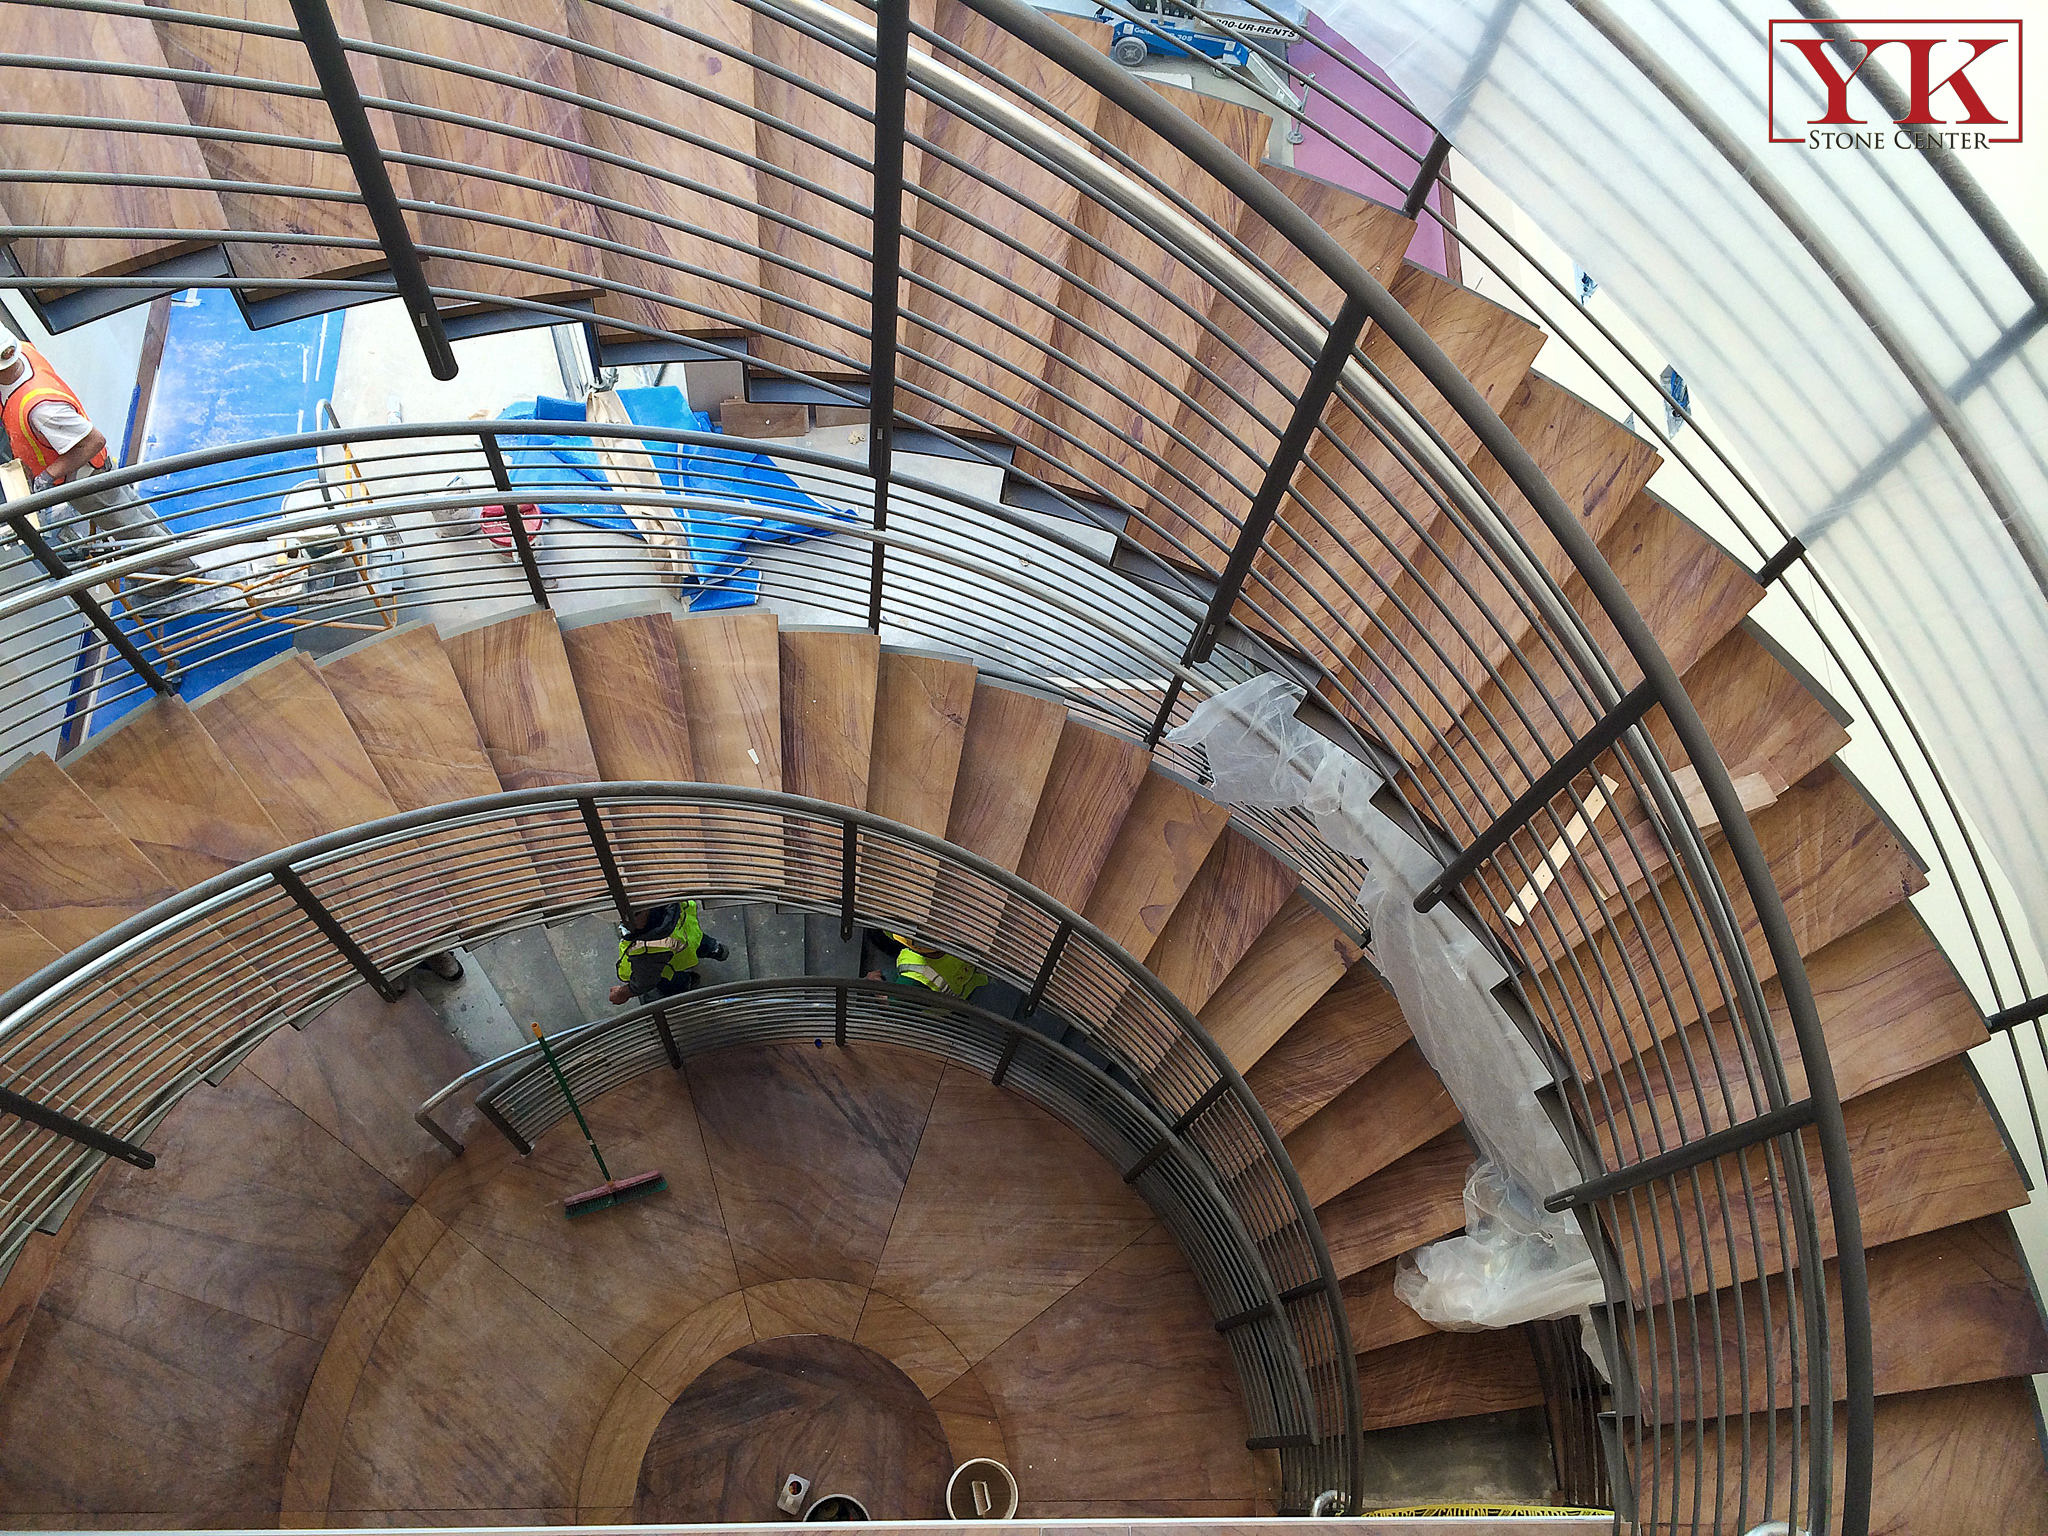 before and after antero resources completed project in denver colorado, installed raound stairs in antero resources building, union one station in denver colorado, yk stone center